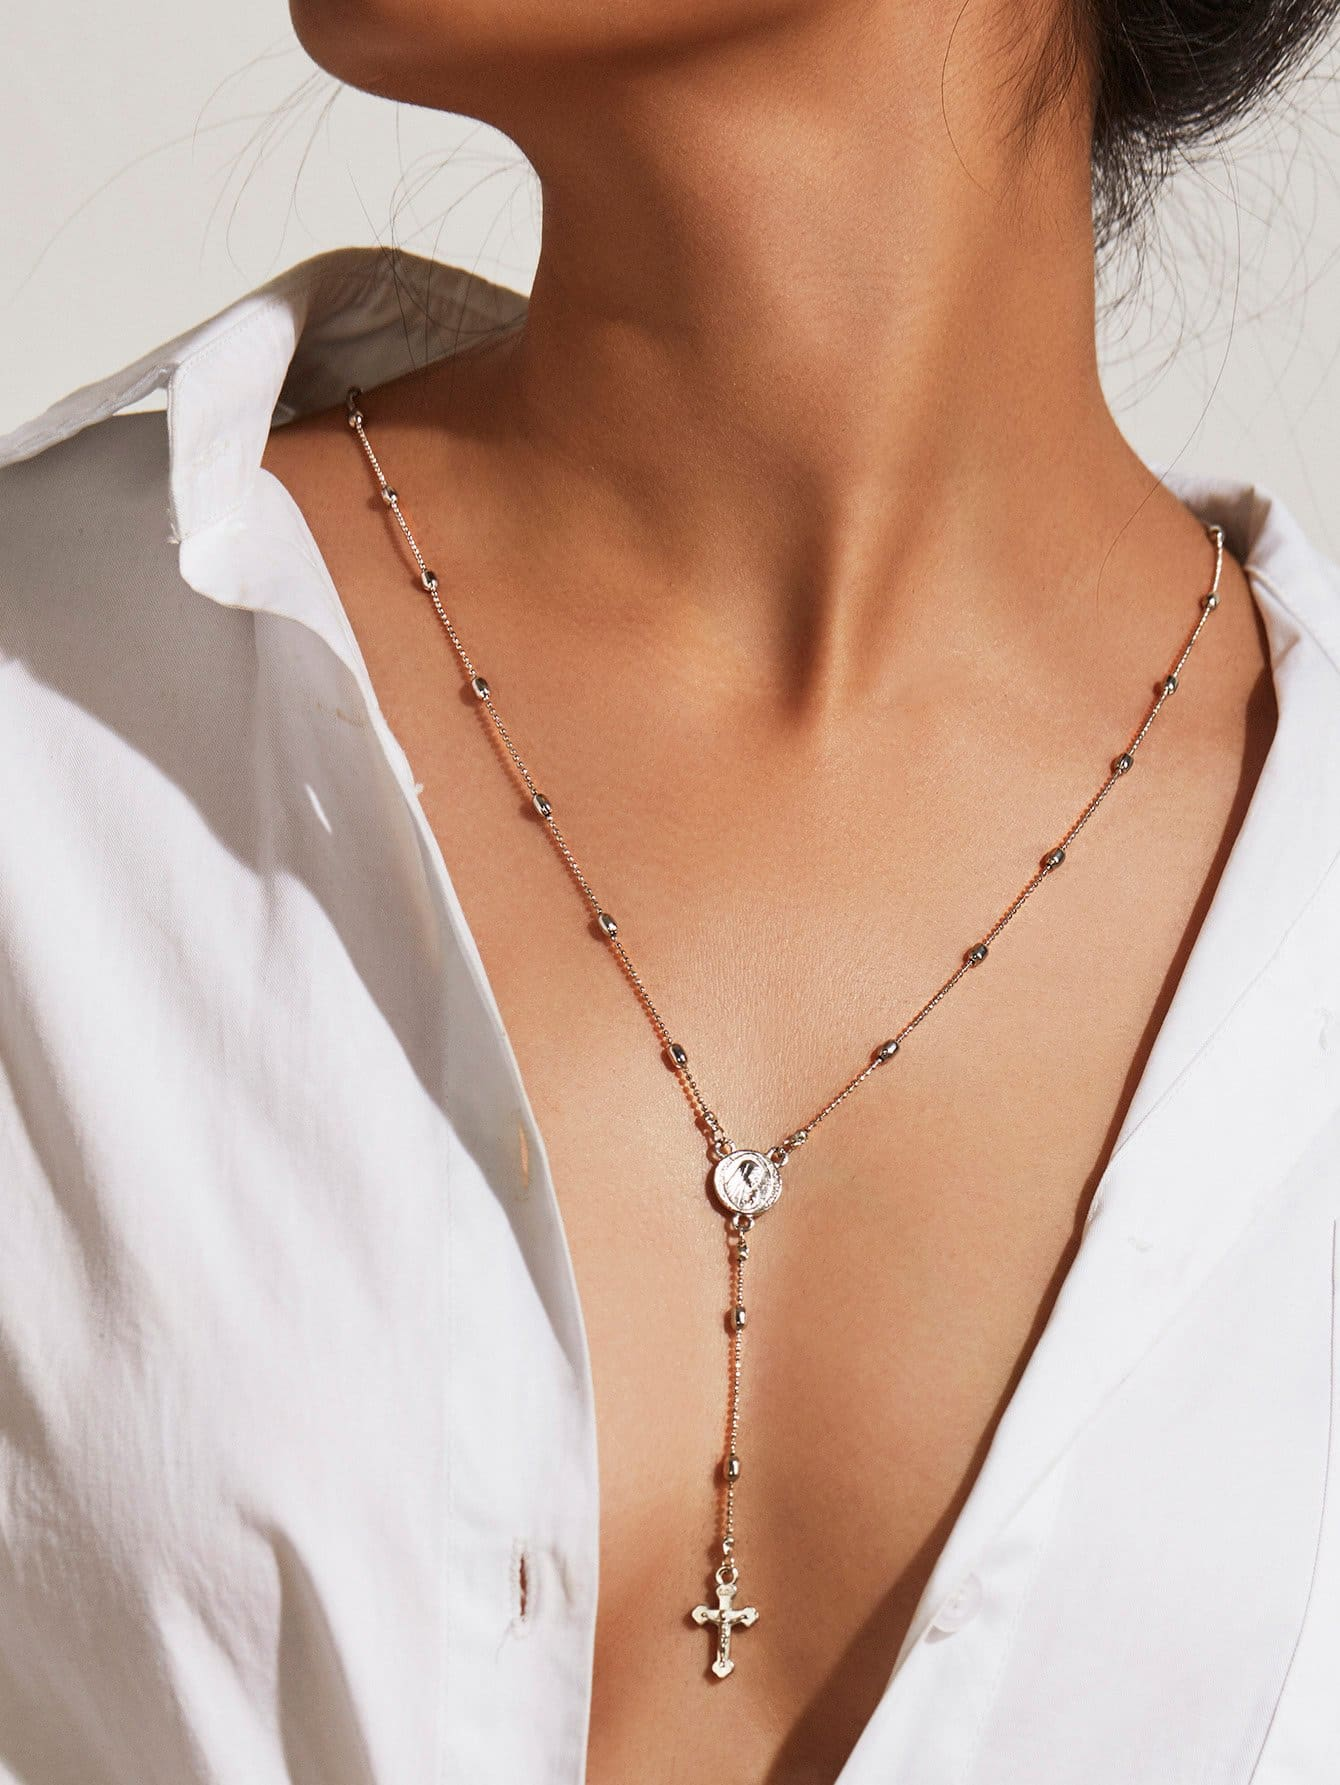 Cross Pendant Beaded Necklace - Necklaces